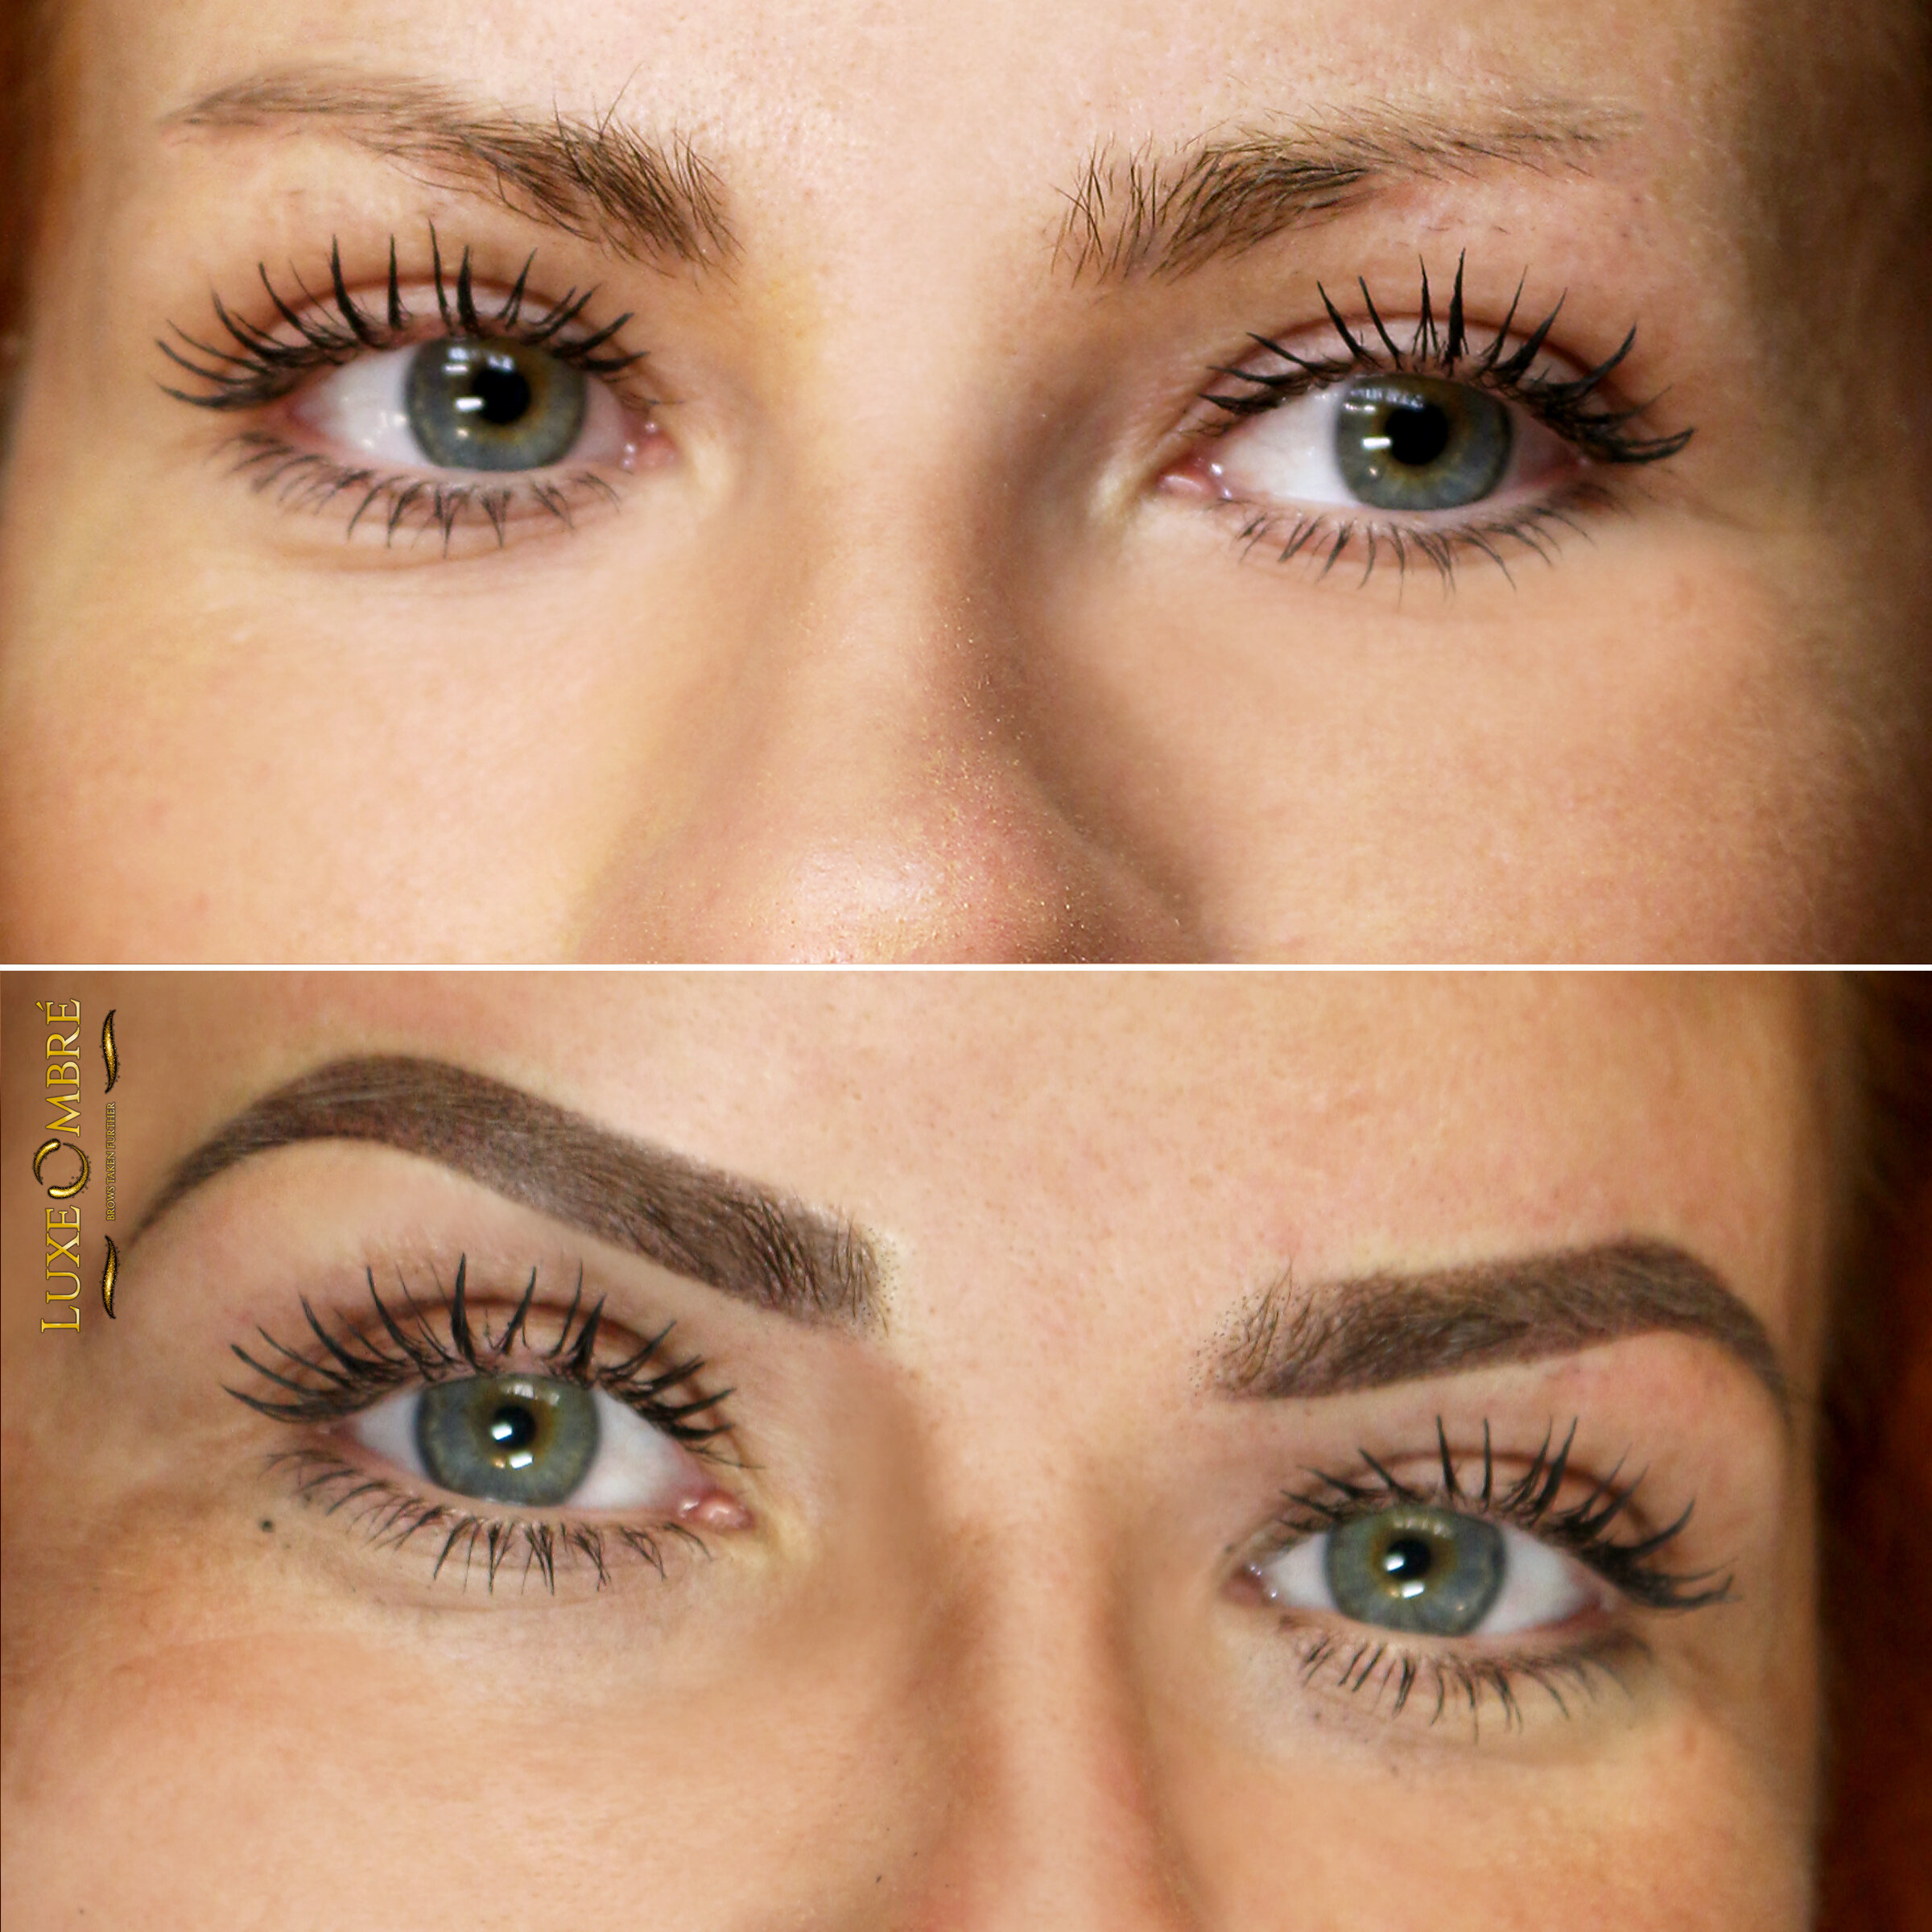 New brows made with LuxeOmbre change the face totally.